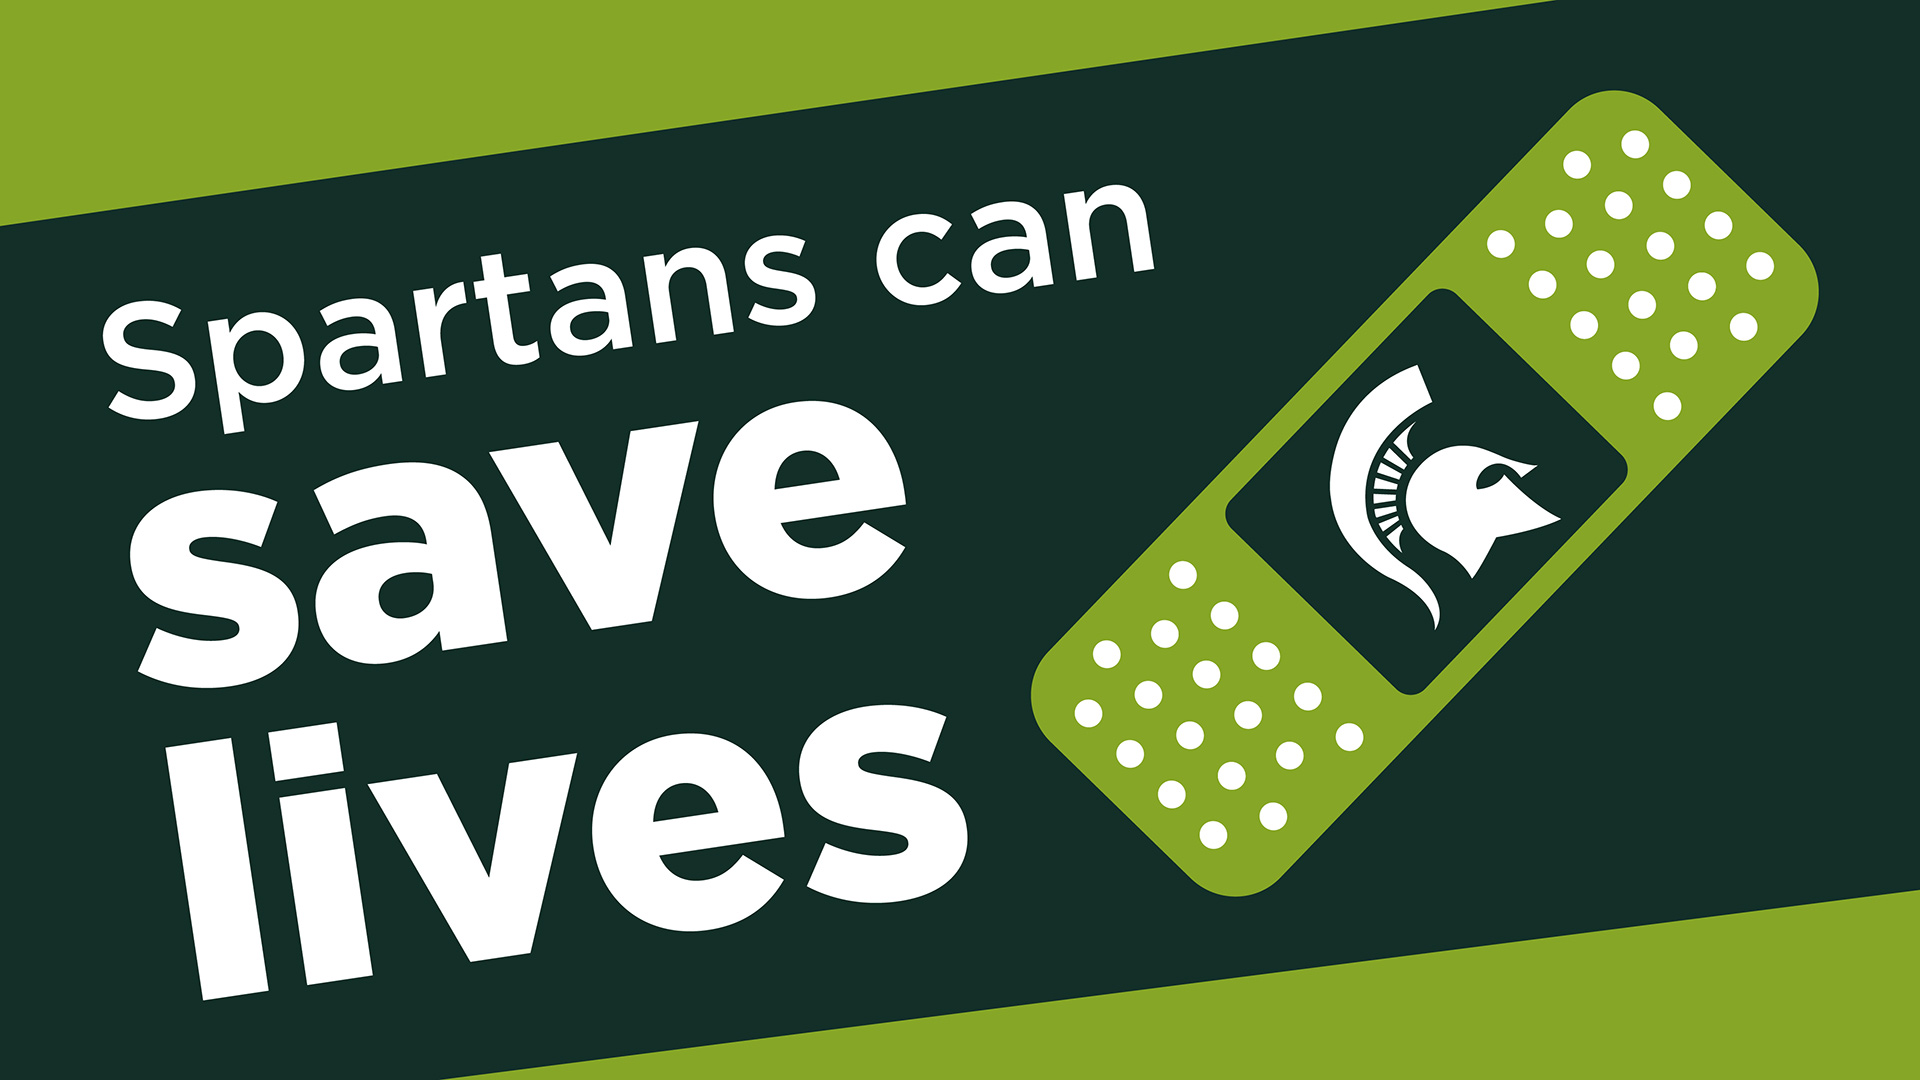 Spartans can save lives graphic